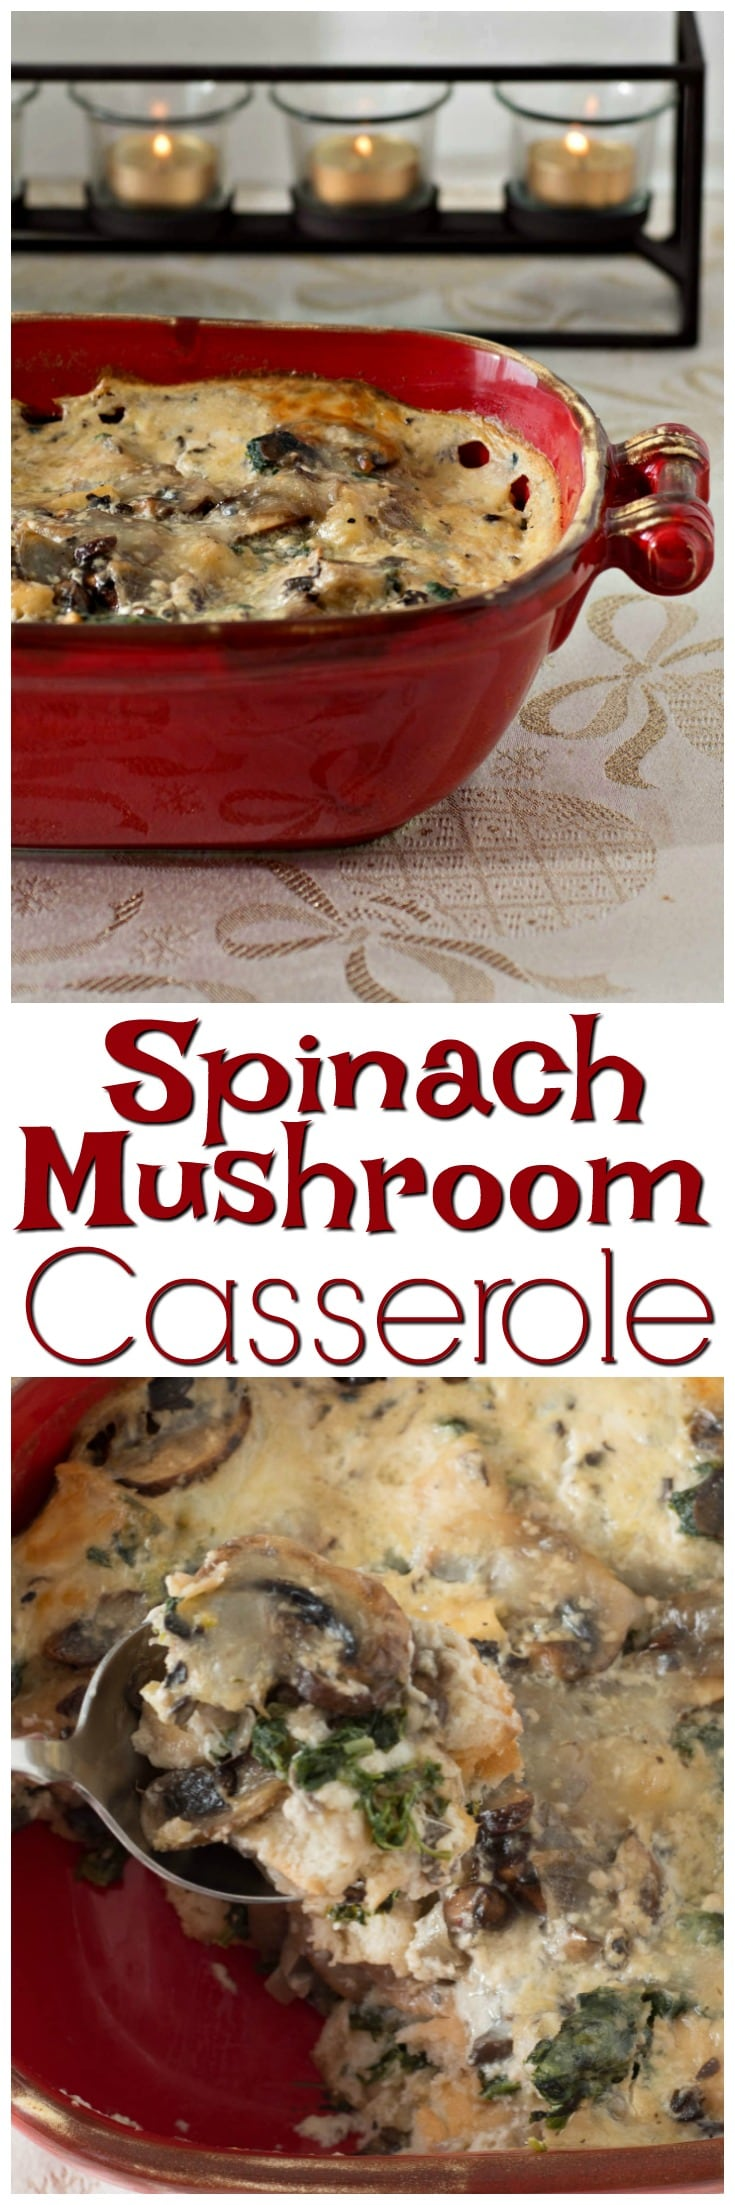 Spinach Mushroom Casserole | Vegetarian Casserole | Comfort Food | One Pot Meal | with Cheese | Meatless Monday | Recipes | Holiday Vegetarian Meals